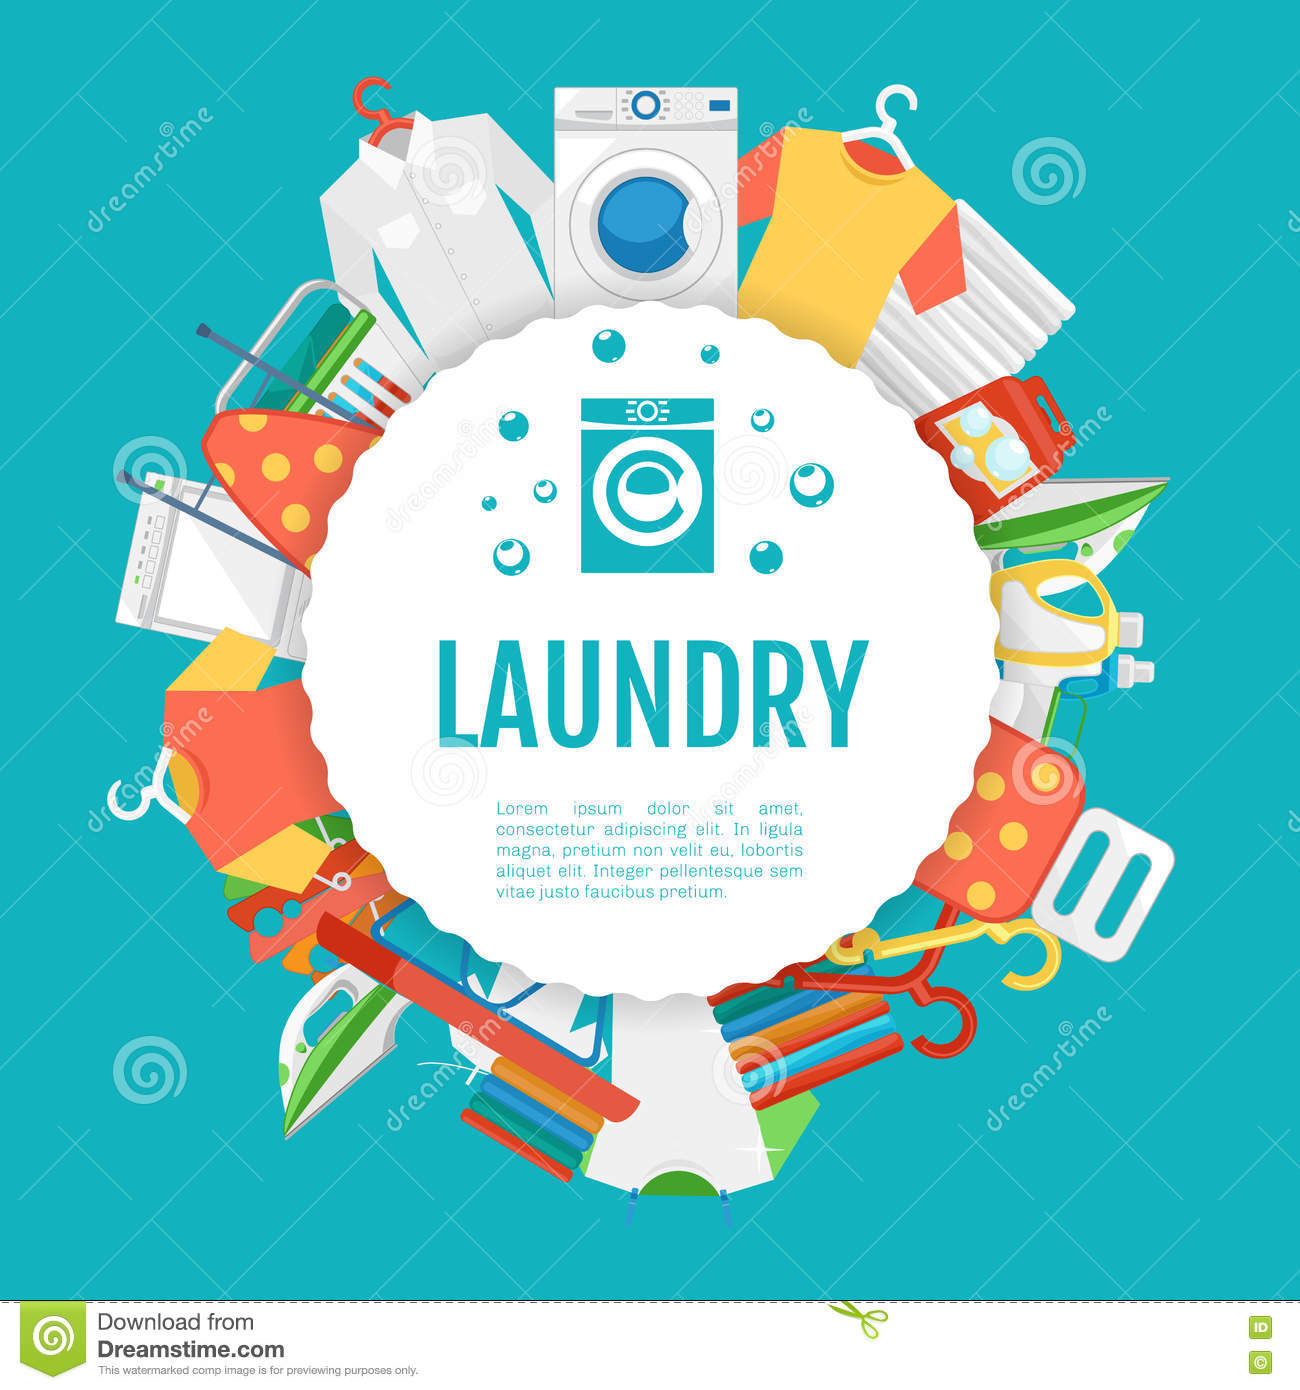 Poster design service - Laundry Service Poster Design Icons Circle Label With Text Stock Vector